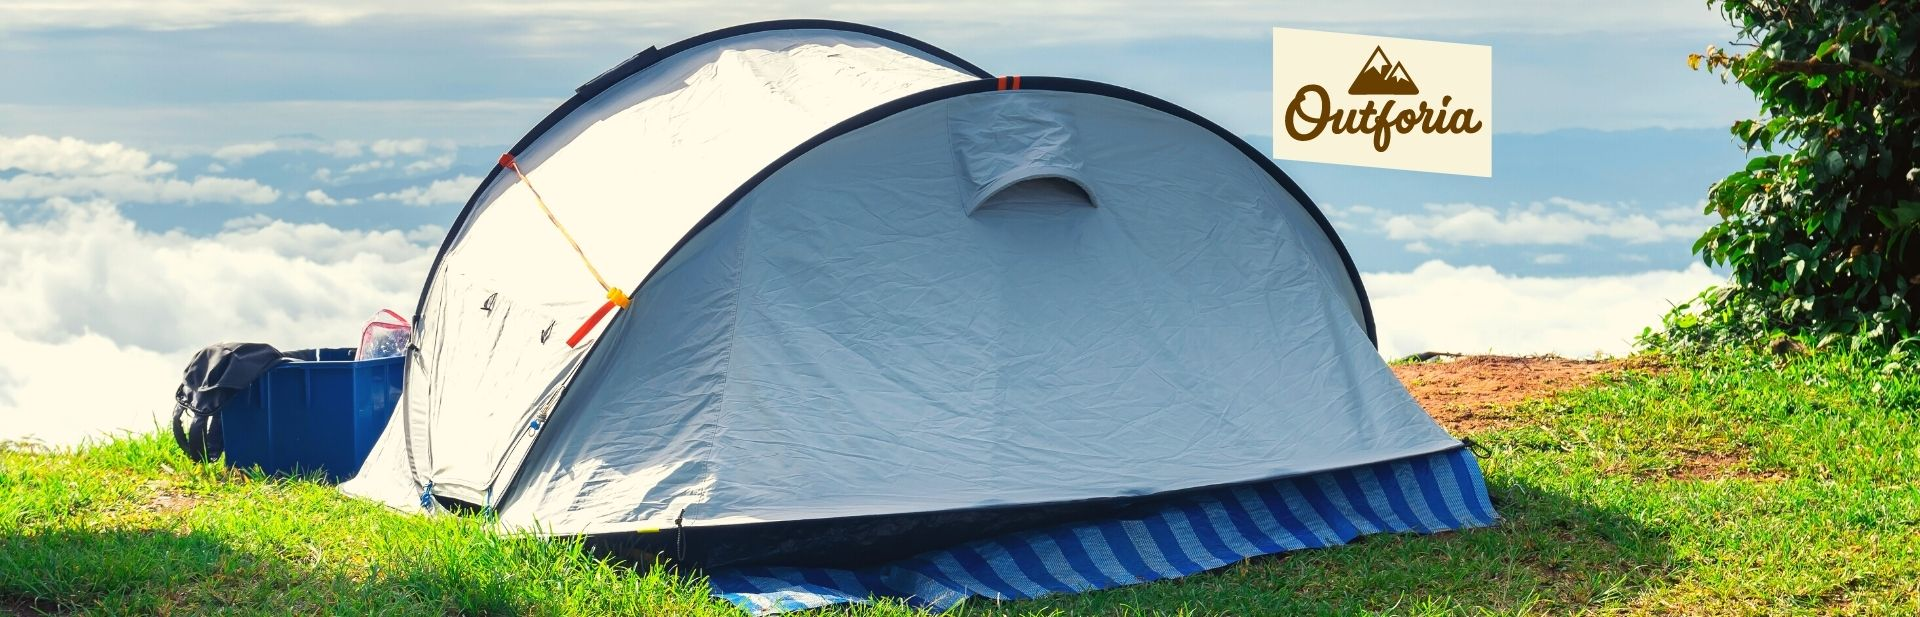 Easiest Tent To Set Up By Yourself – Reviews and Complete Buyer Guide